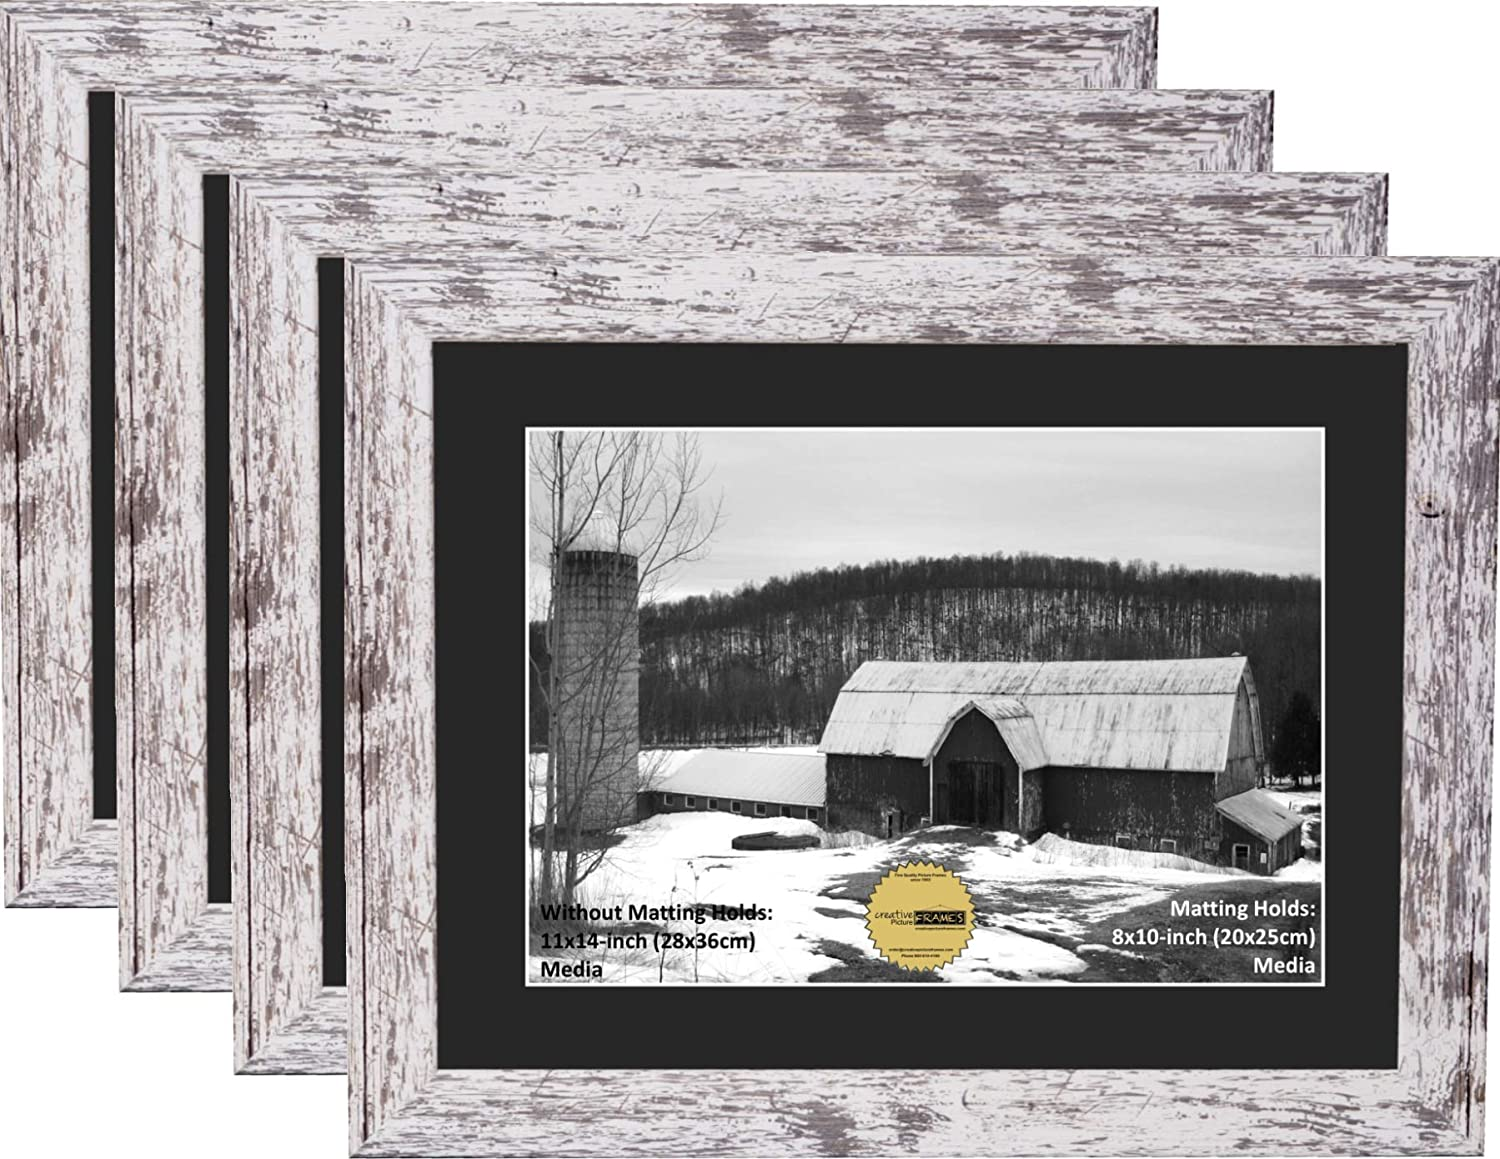 Creative Picture Frames 8x10 Opening 11x14-inch Black Our New color Mat 2021 model in